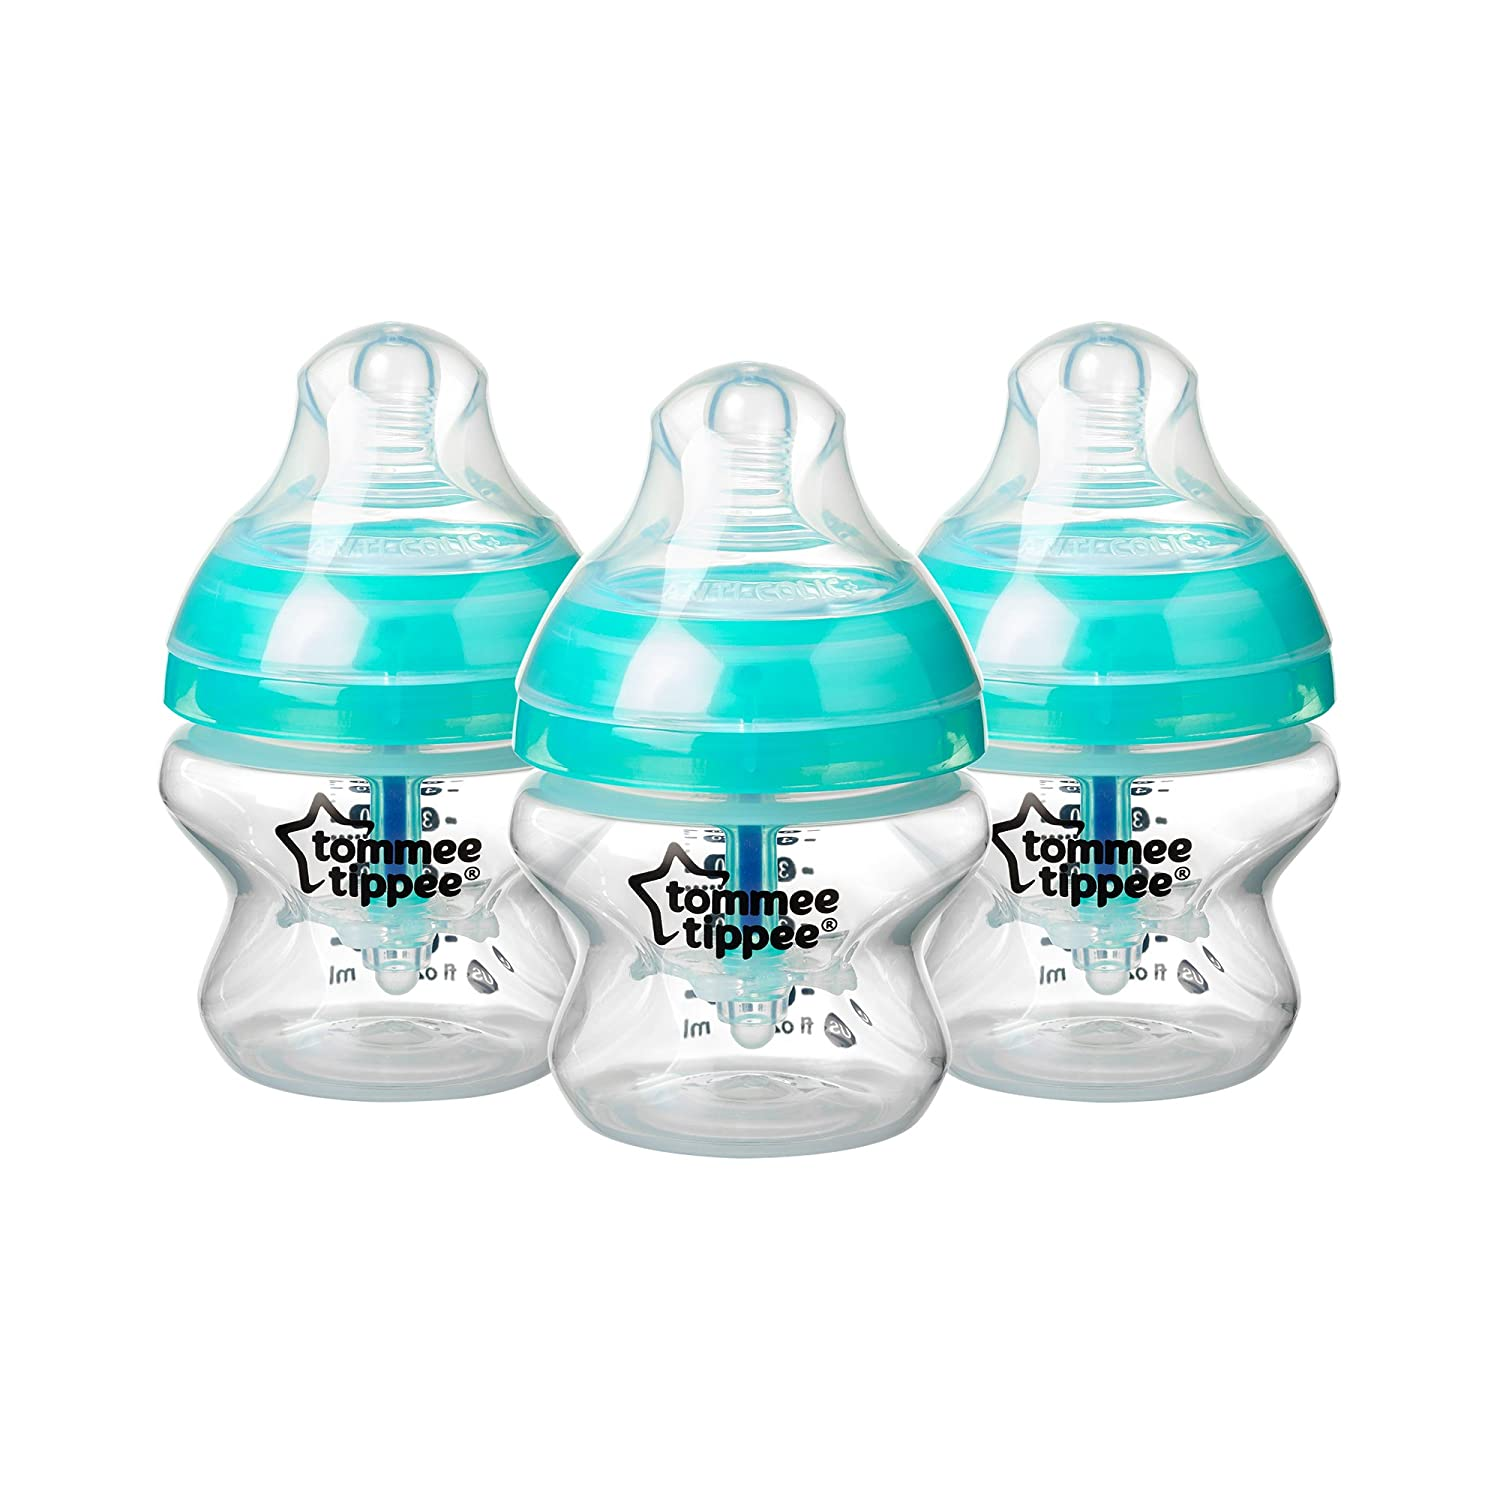 Tommee Tippee Advanced Anti-Colic Baby Bottle, 5 Ounce, 3 Count 522730